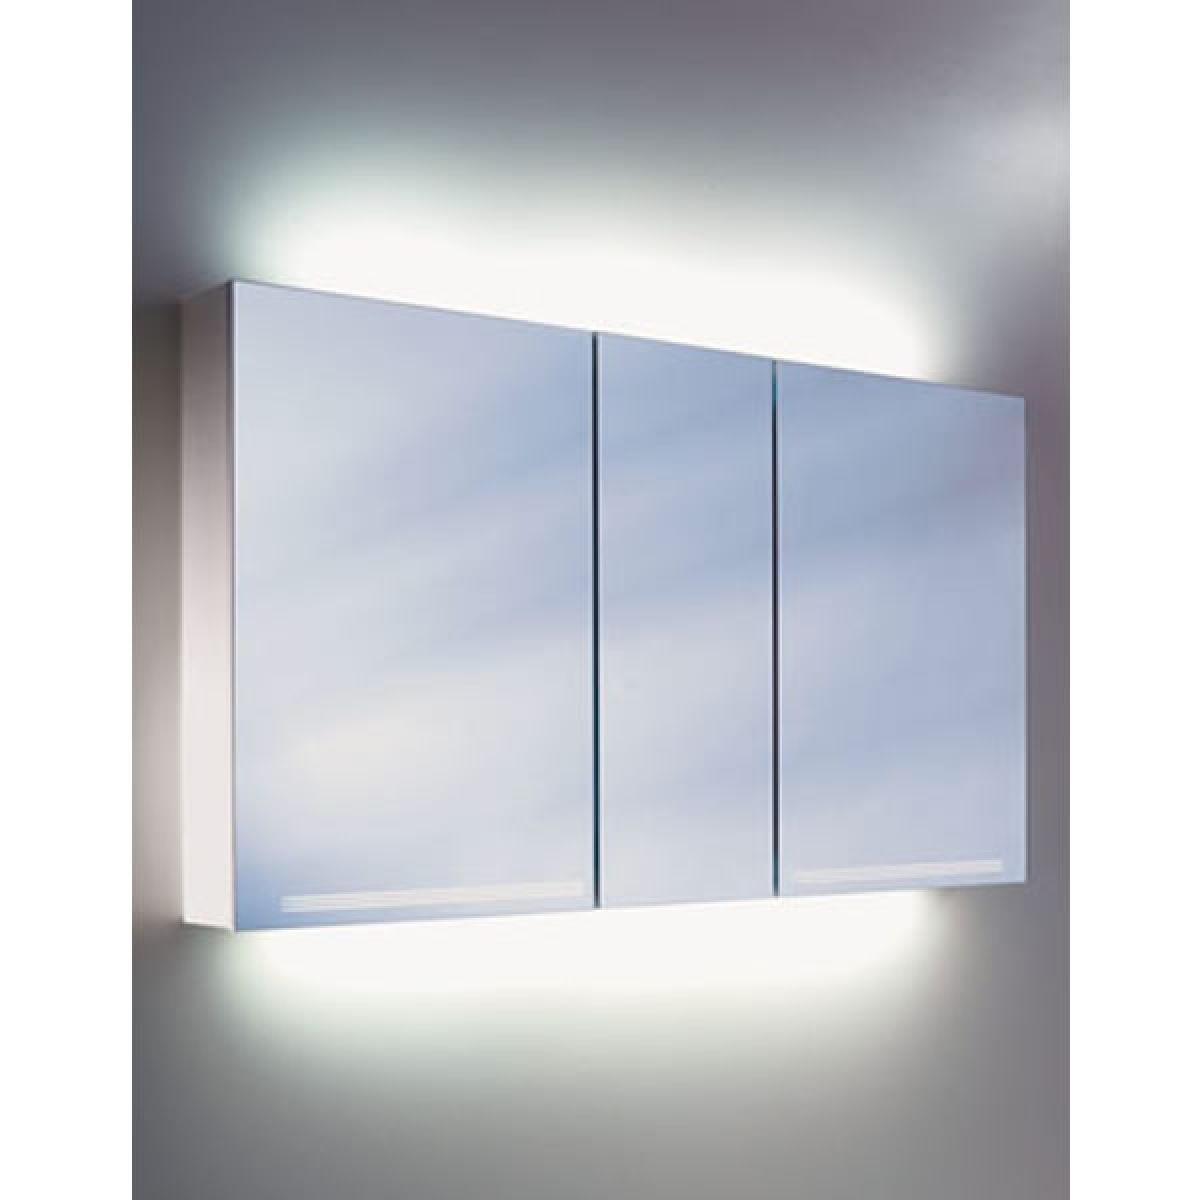 Permalink to 3 Door Illuminated Bathroom Cabinet